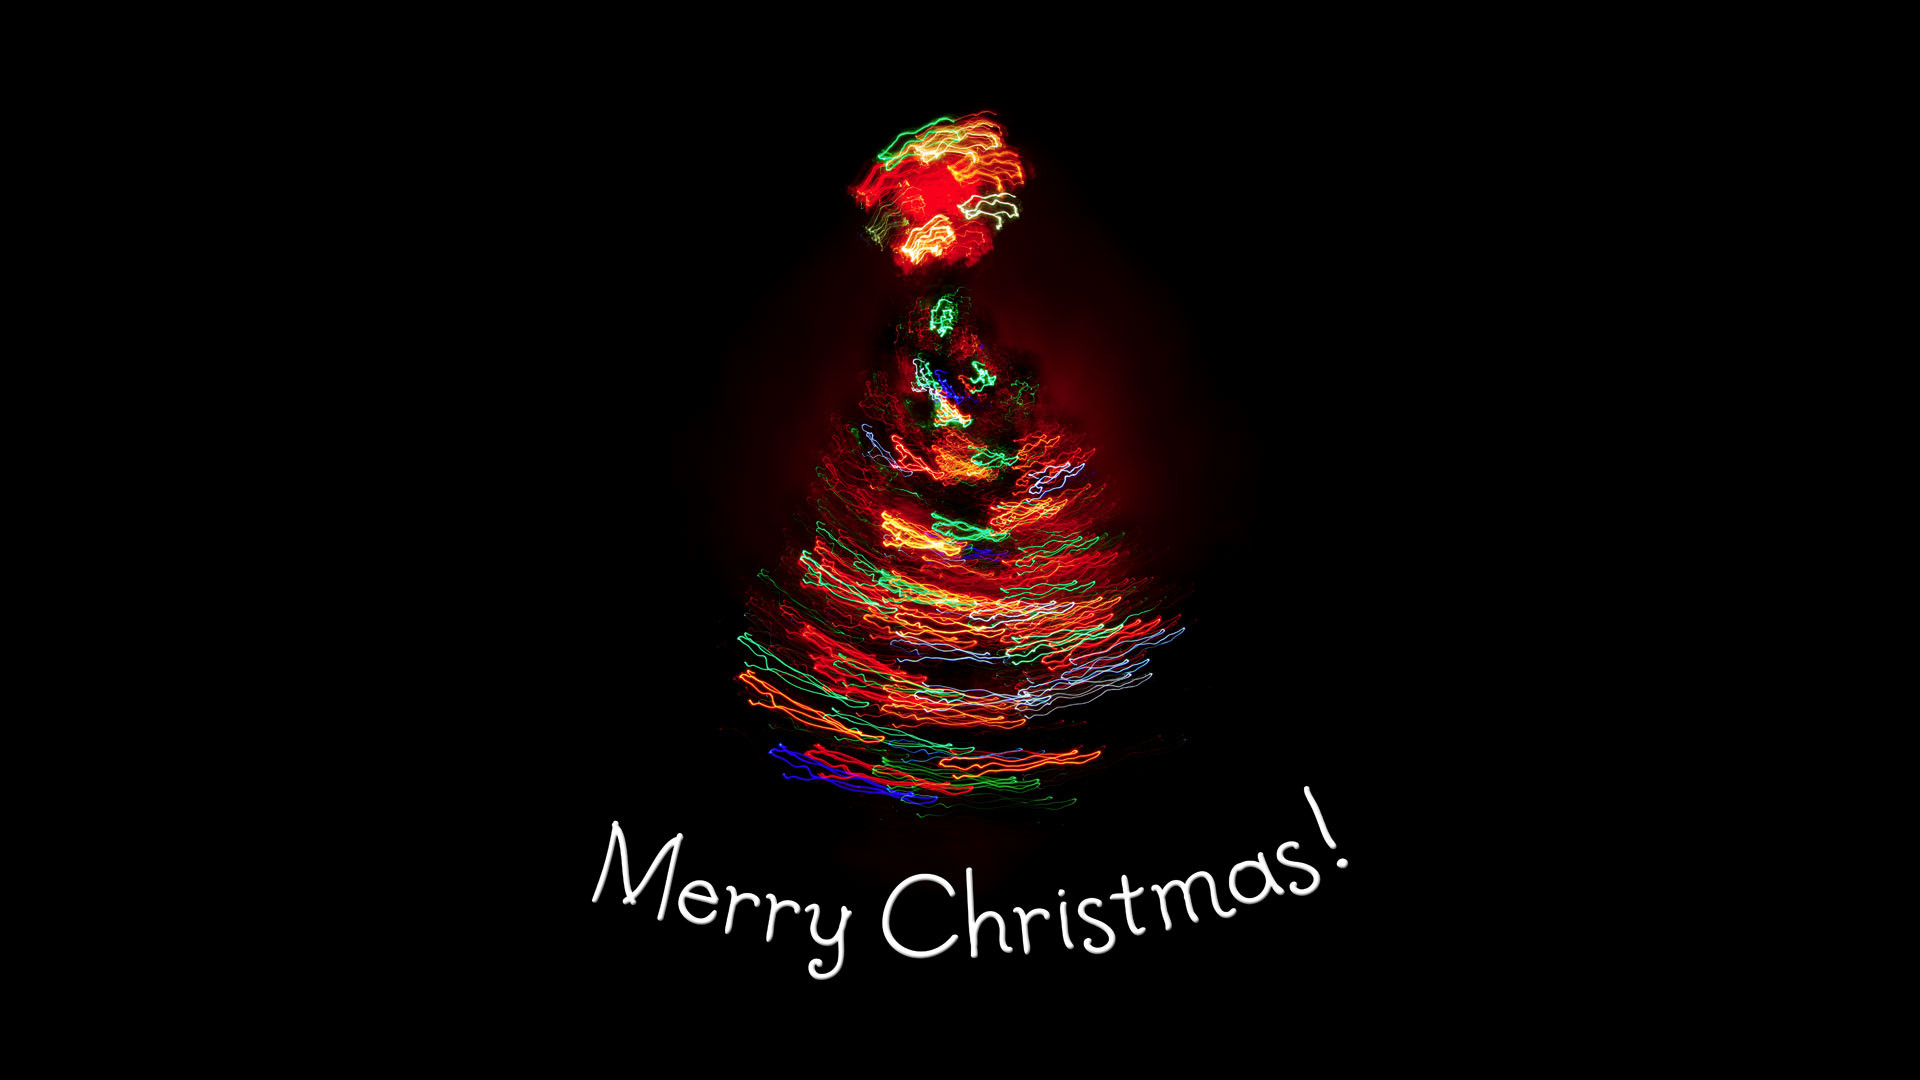 … hot 20 merry christmas wallpapers for windows 8 themewallpapers com …